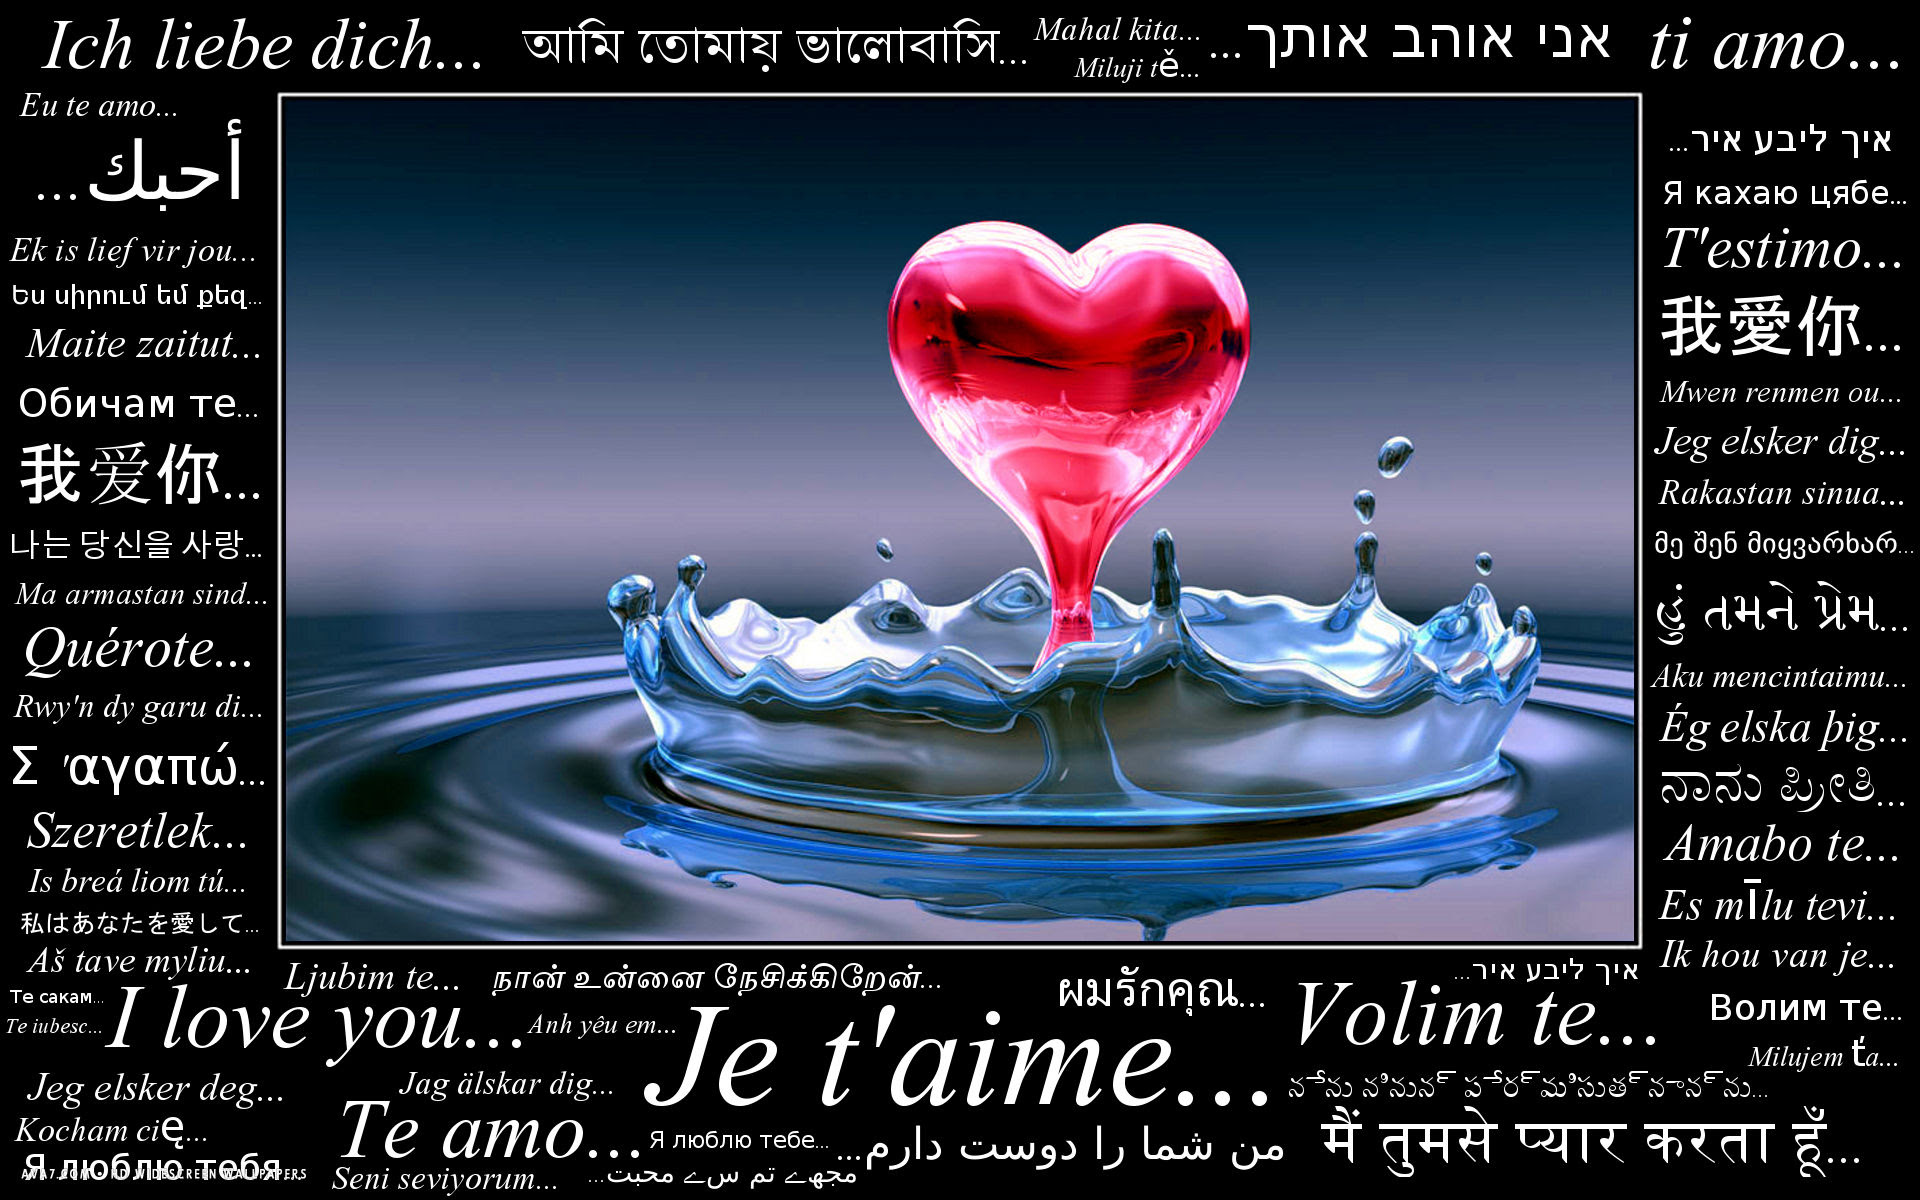 i love you languages translation french german spanish italian chinese russian hd widescreen wallpaper